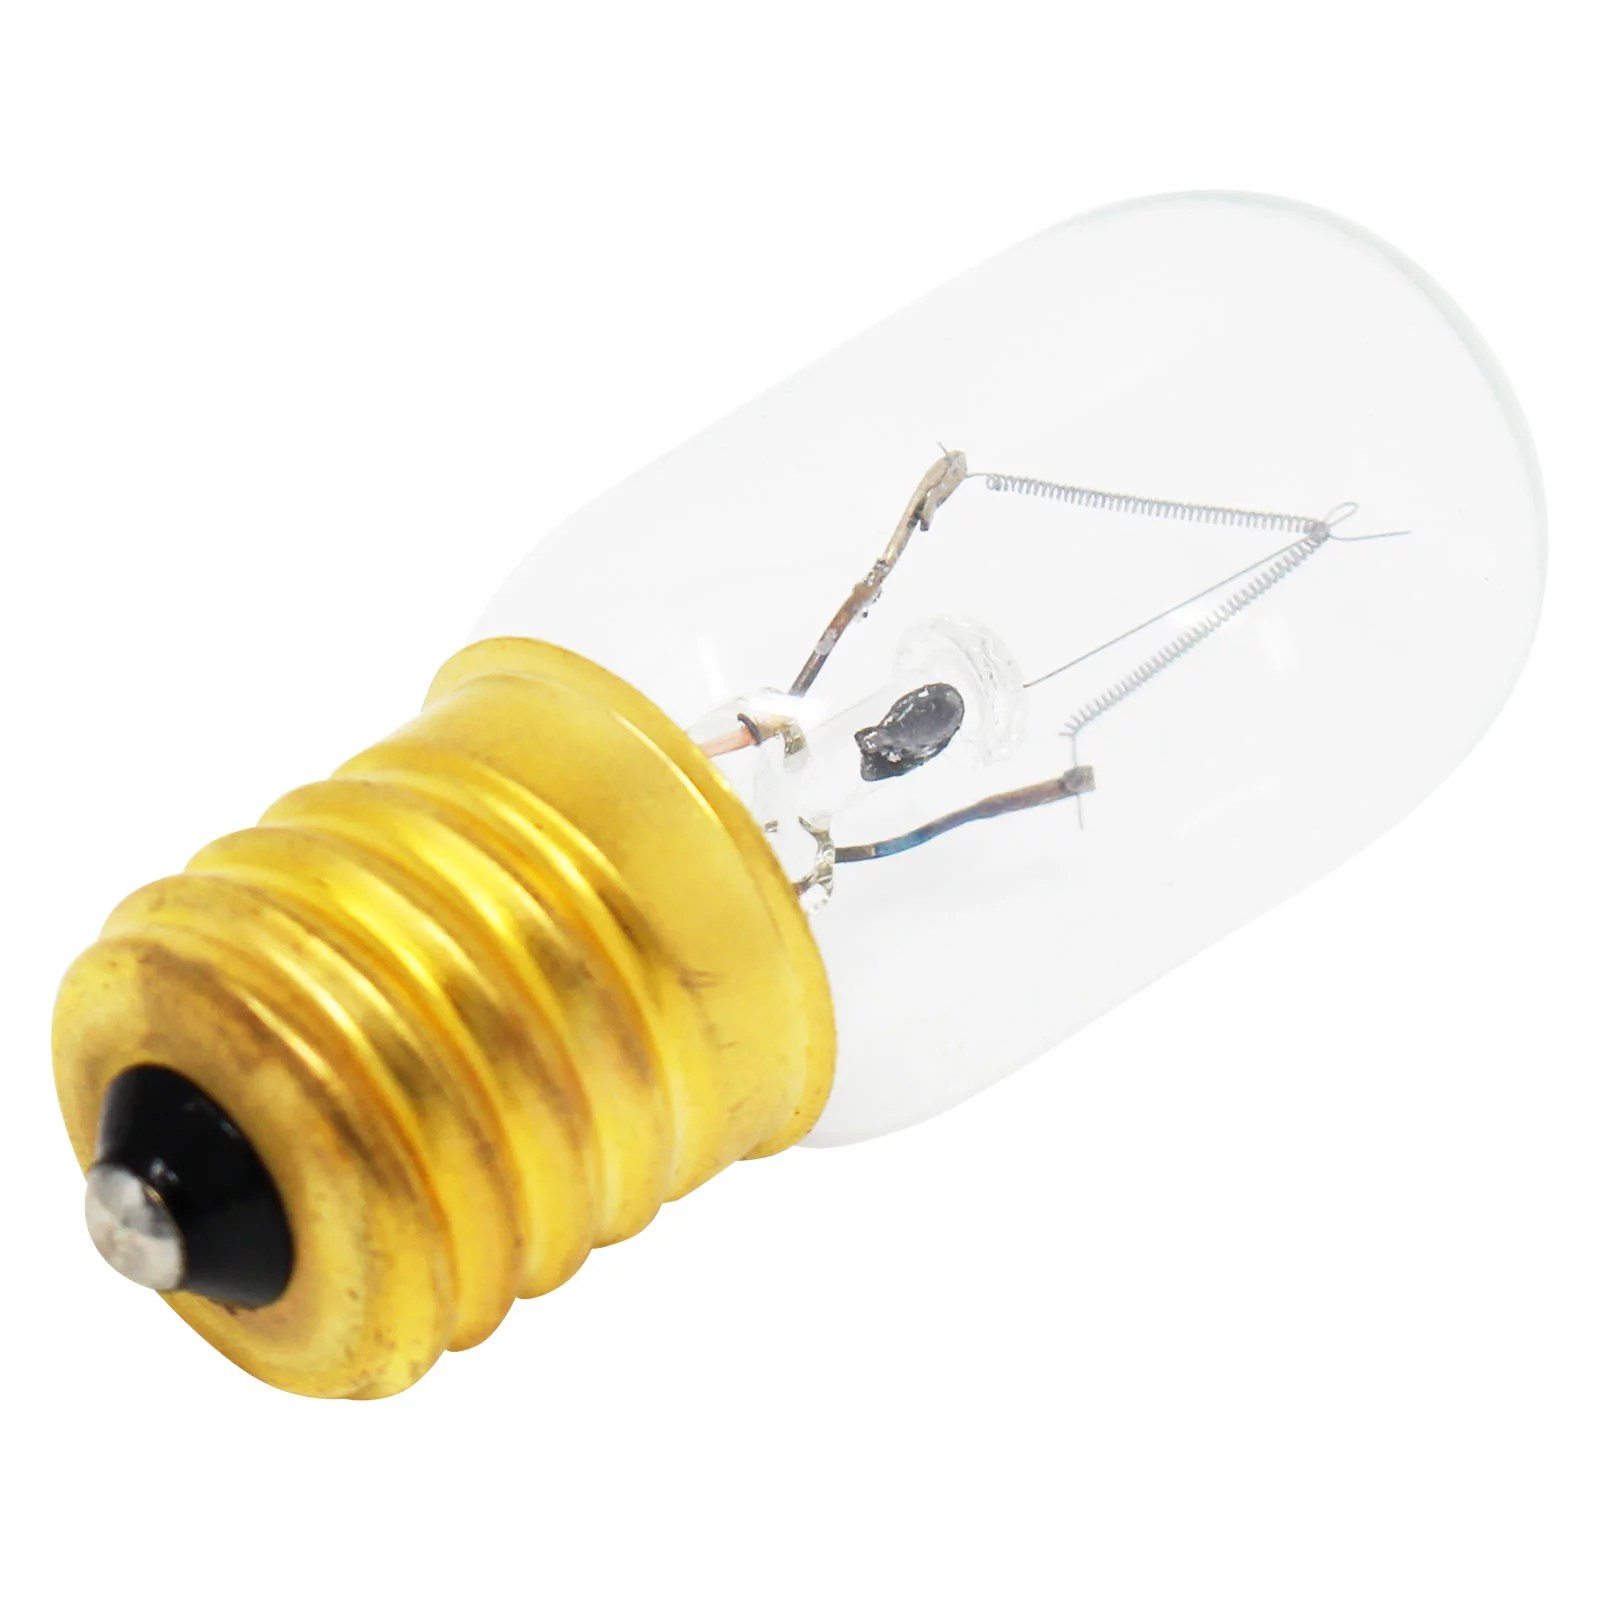 replacement light bulb for maytag mmv5208ws1 microwave compatible maytag 8206232a light bulb